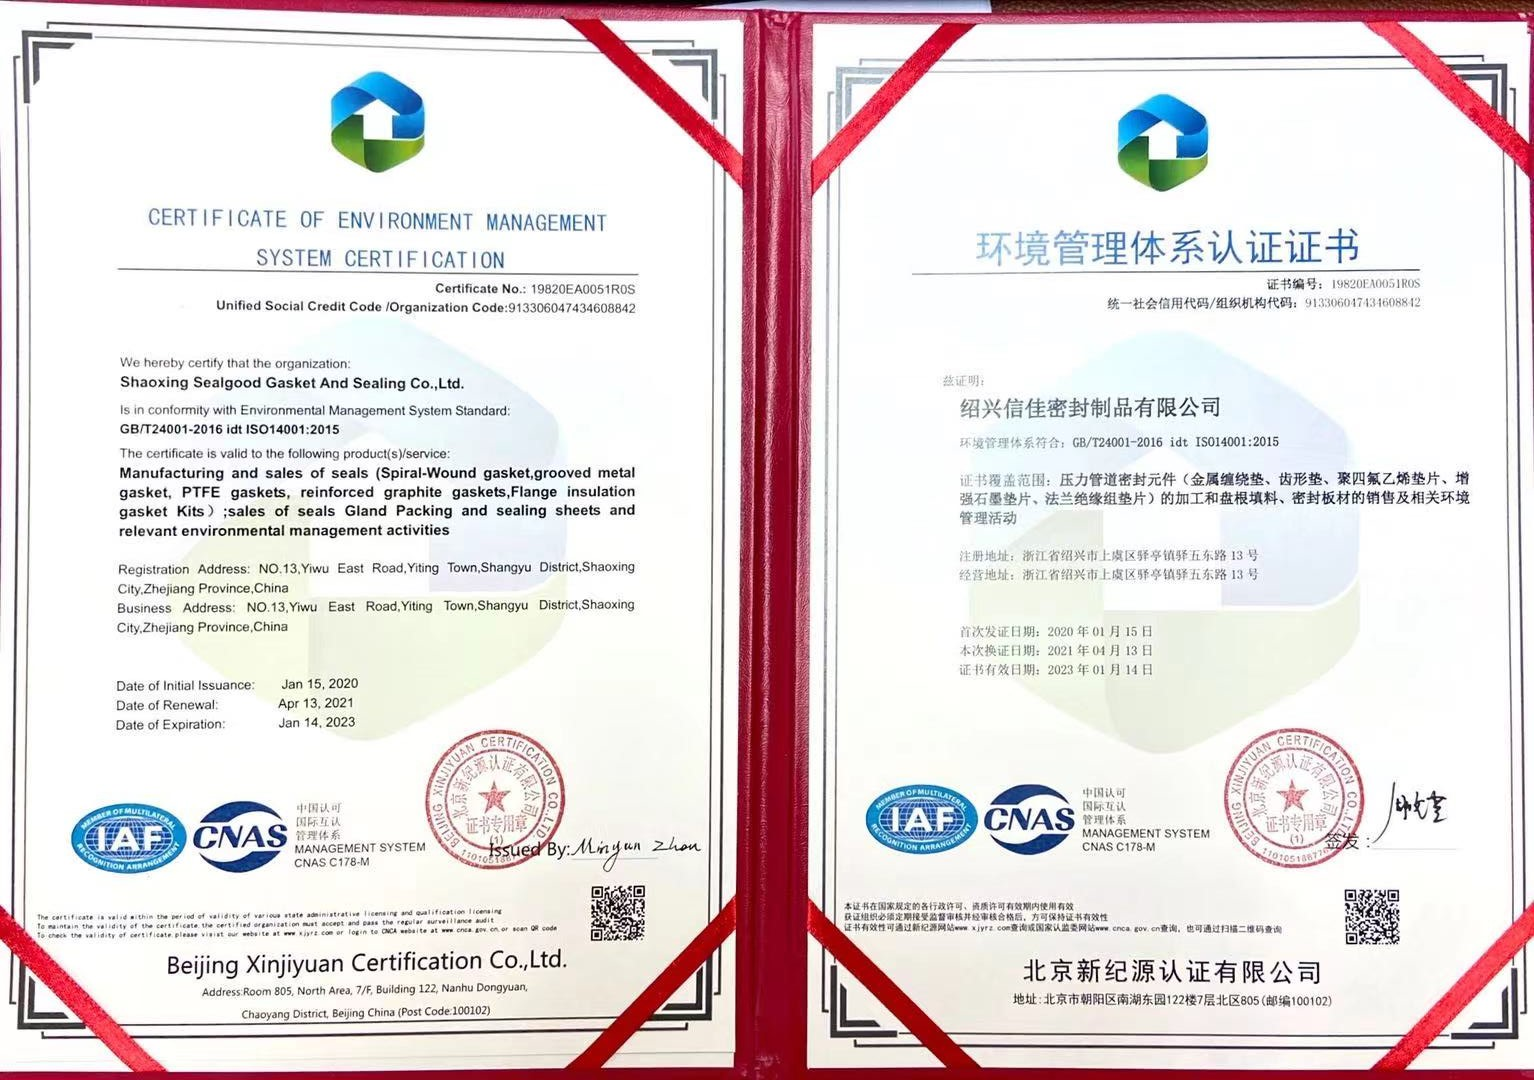 Shaoxing Sealgood gasket and sealing Co., Ltd. obtained a new certification